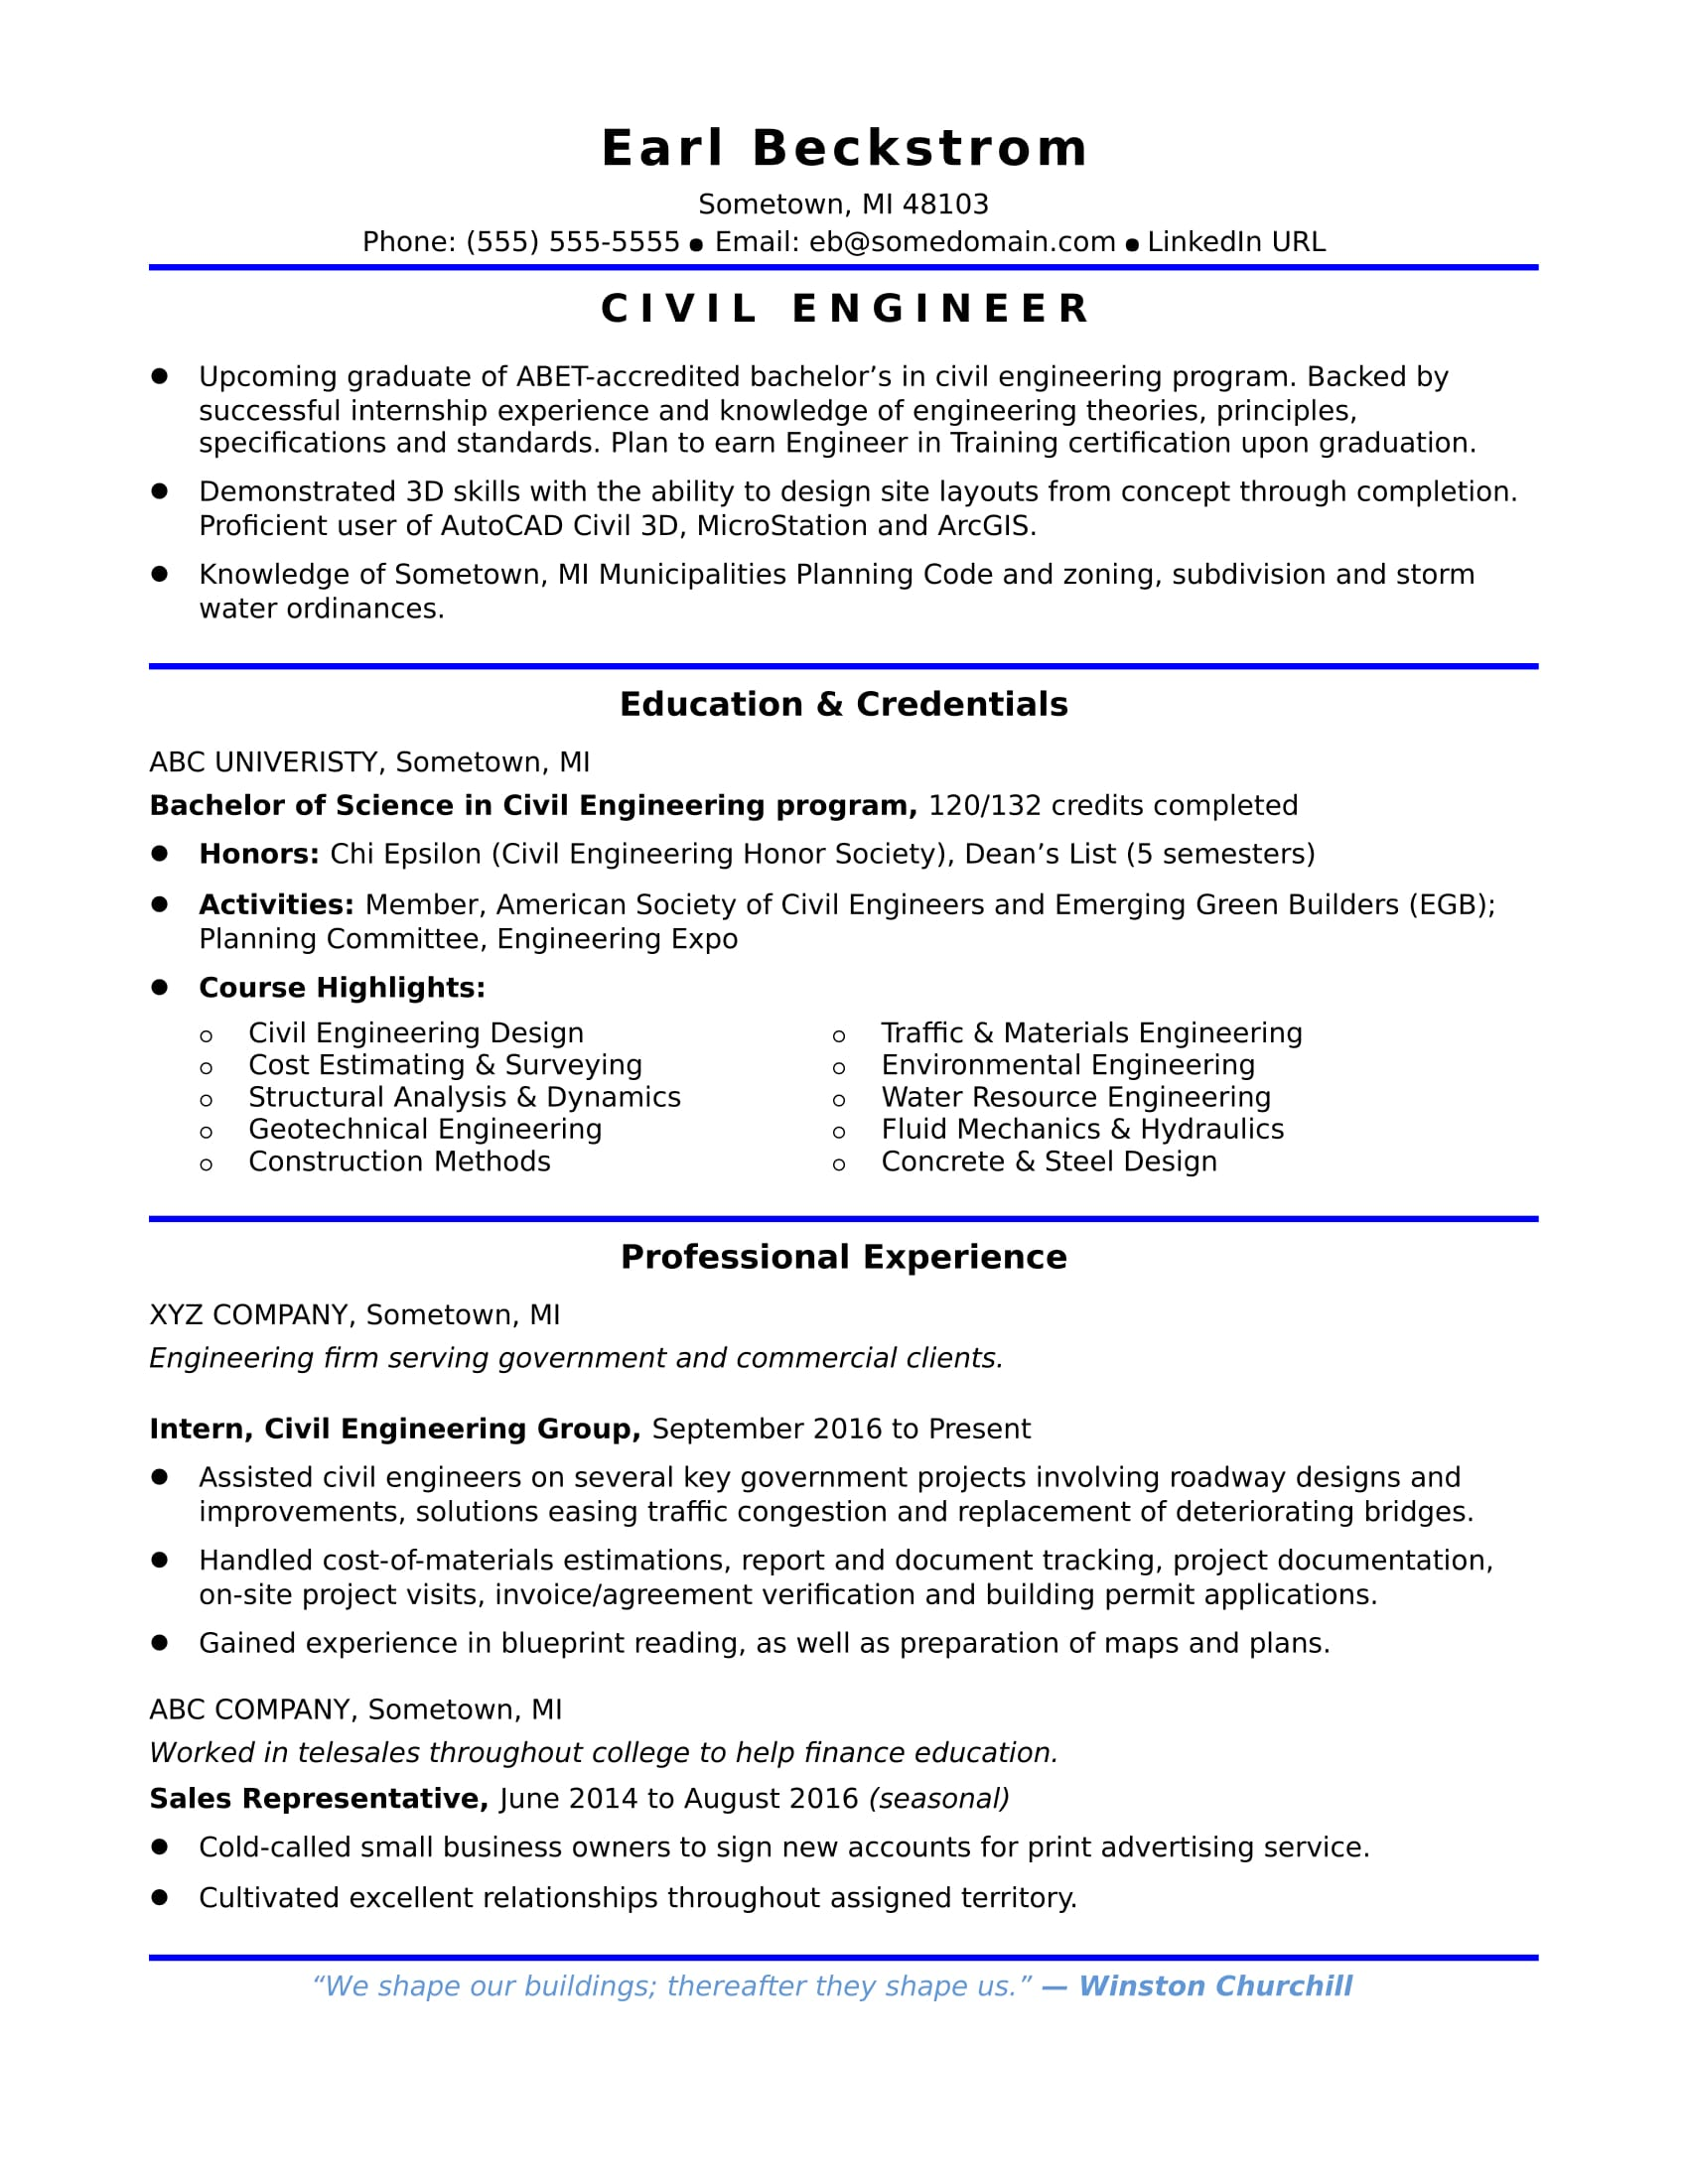 Amazing Sample Resume For An Entry Level Civil Engineer On Civil Engineering Student Resume